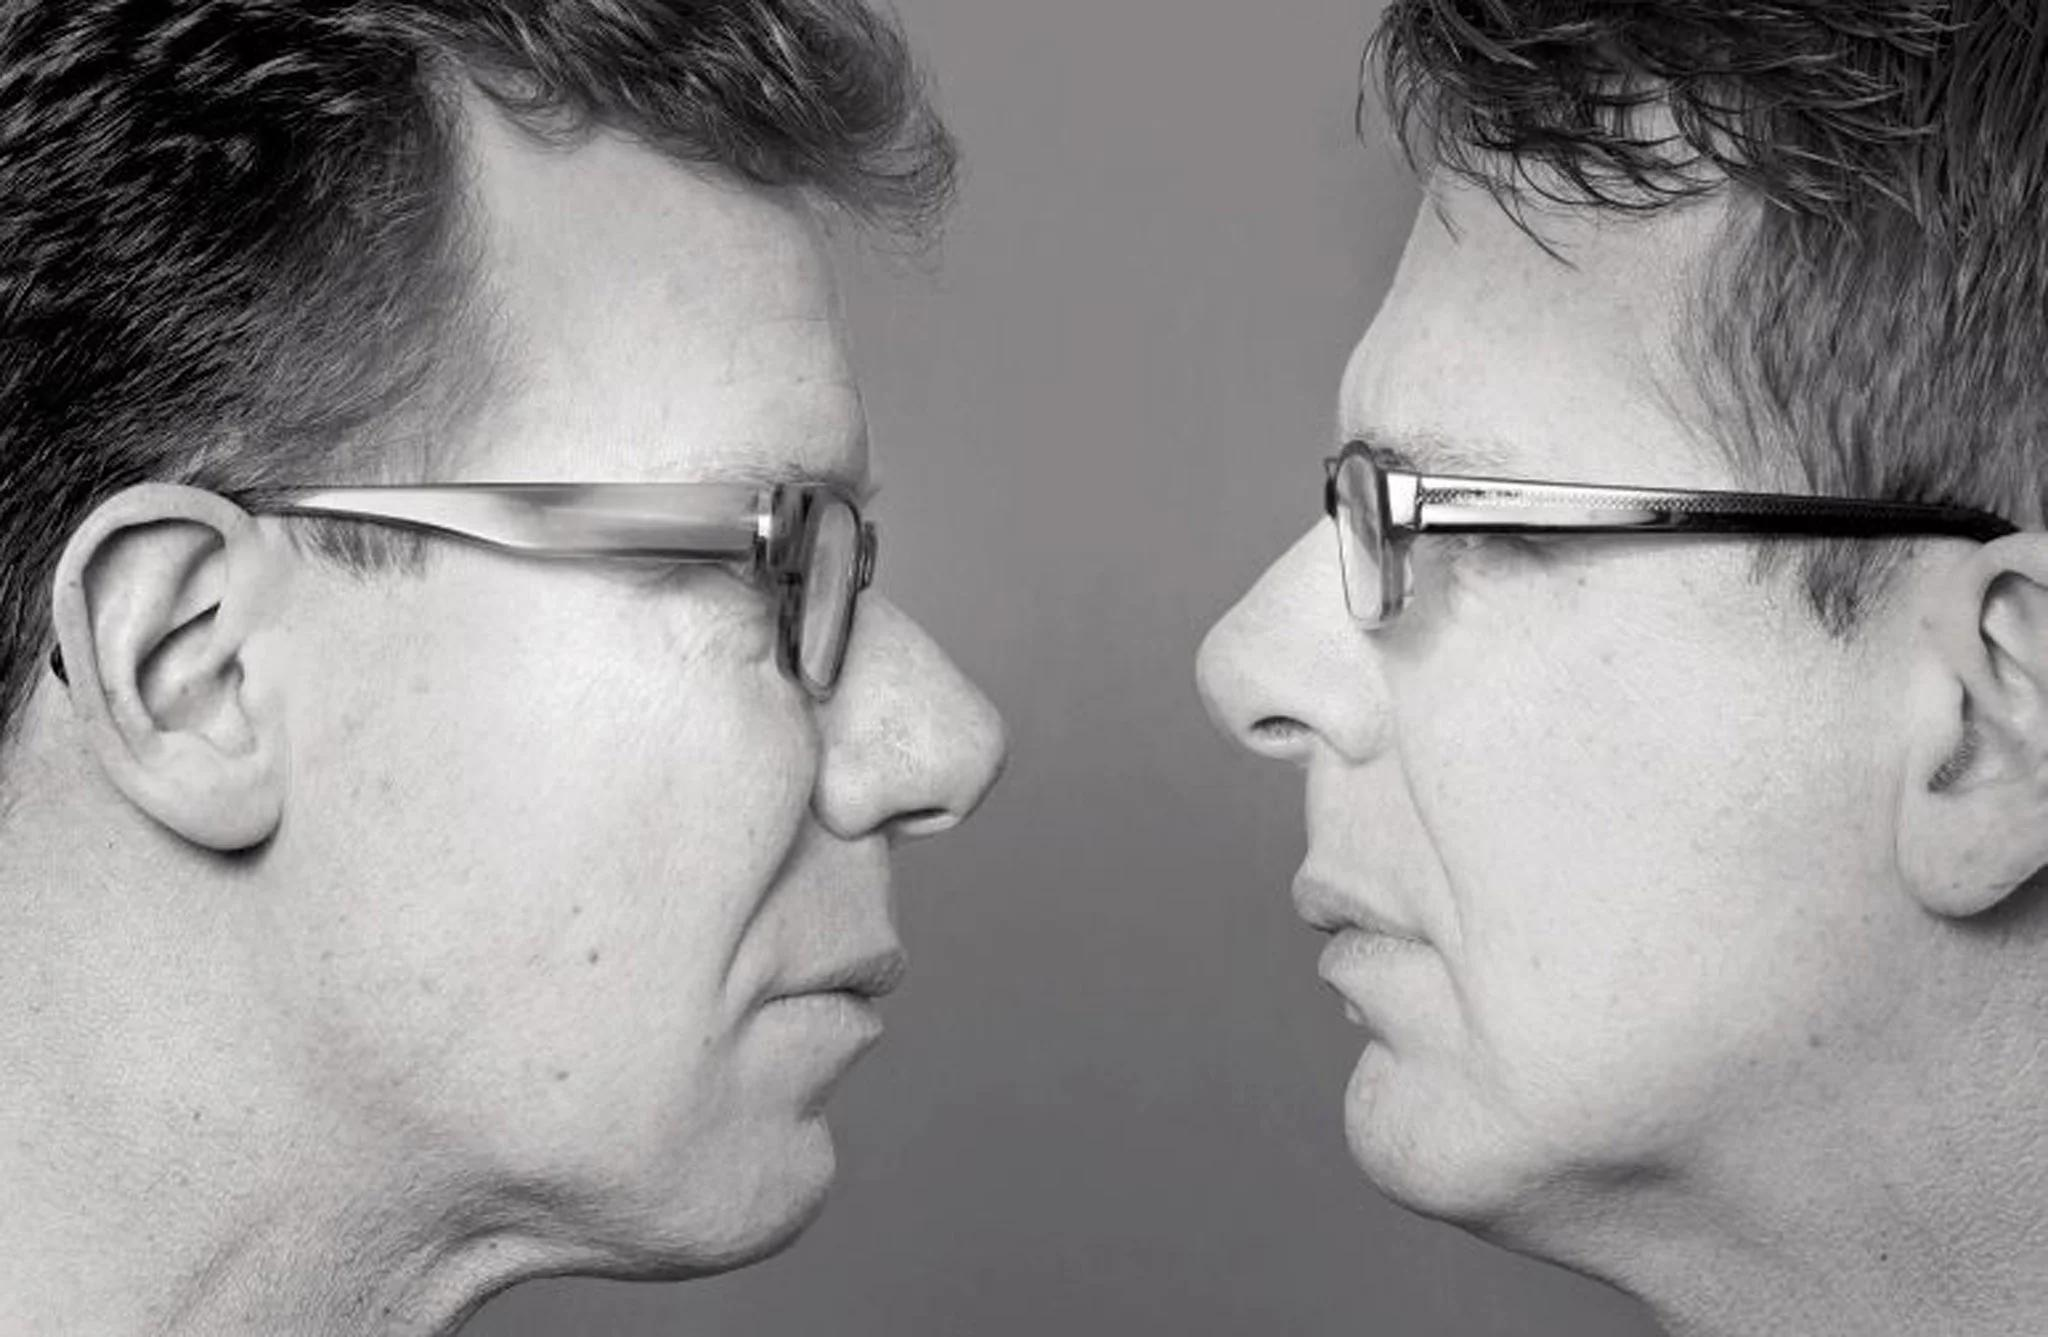 Going The Distance The Proclaimers On 25 Years Of Singalongs Staying True To Their Roots And Proving The Doubters Wrong The Independent The Independent